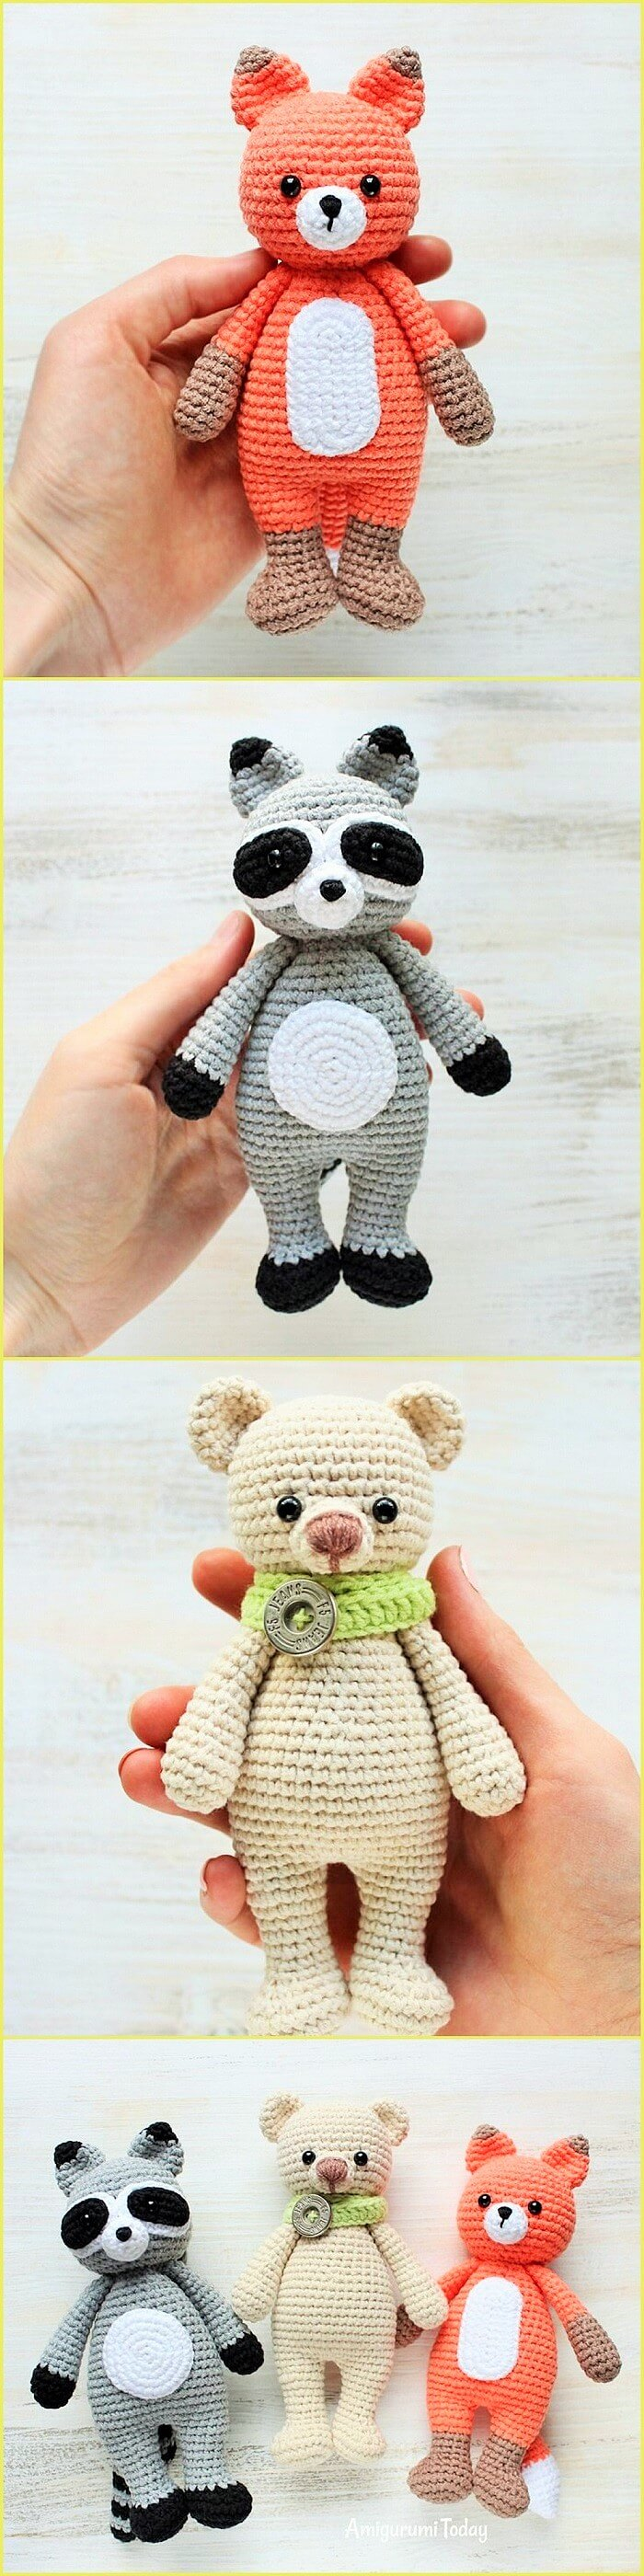 Crochet toys Ideas-2 (2)